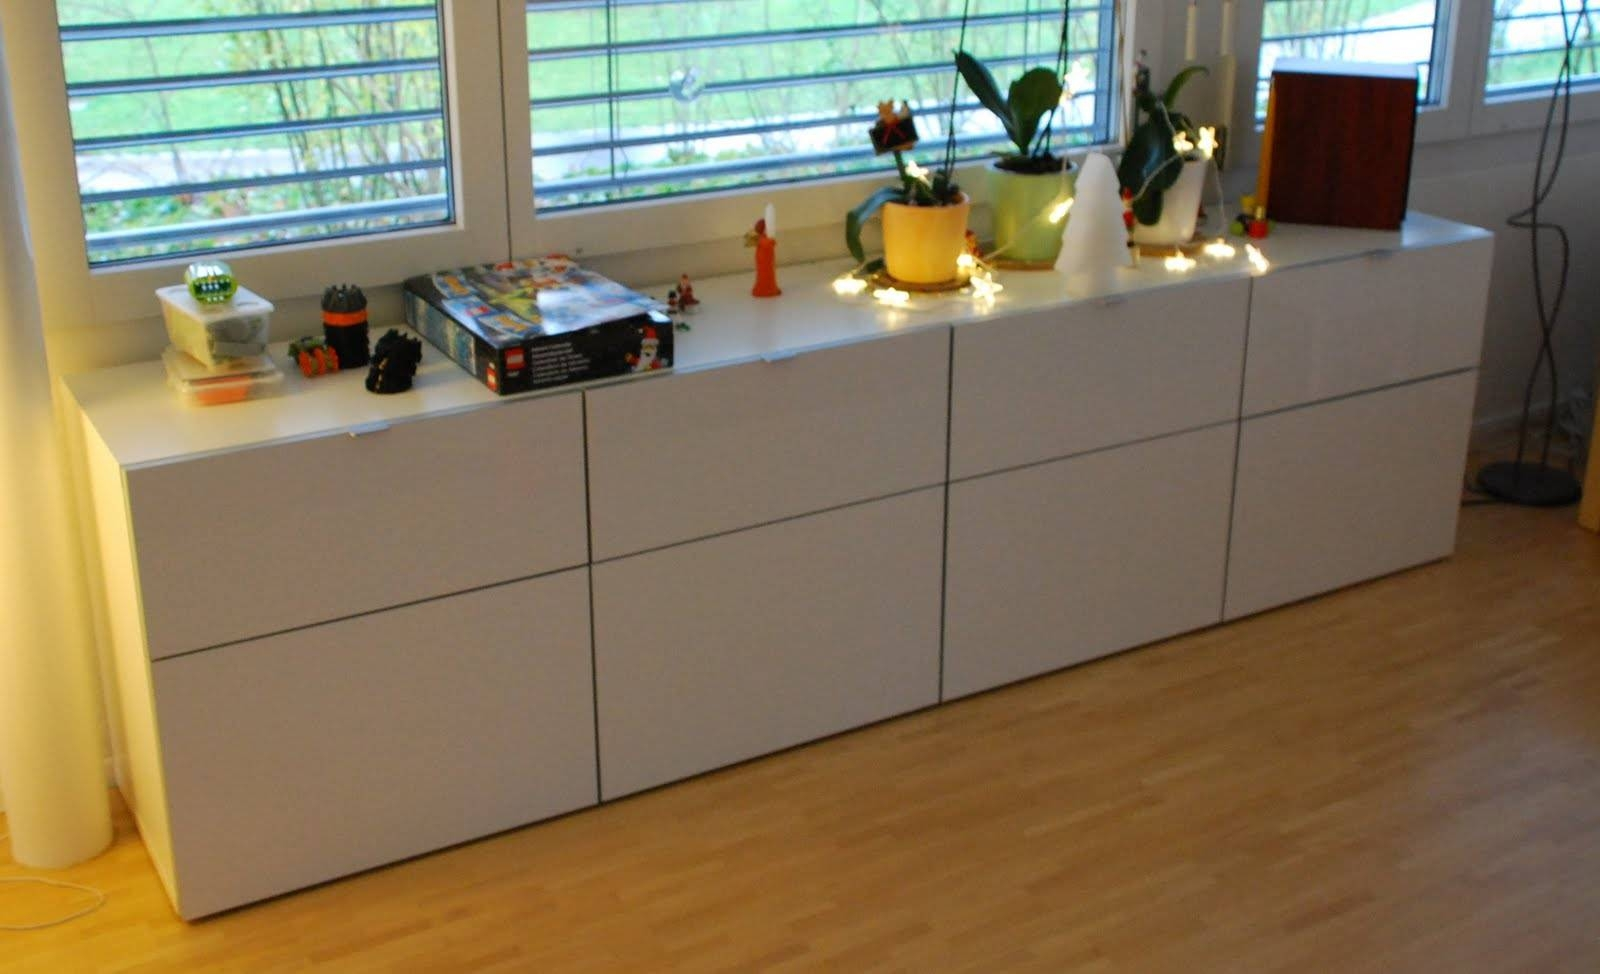 Ikea Besta Storage Combination White Concrete Furniture Ideas with regard to Ikea Besta Sideboards (Image 10 of 15)